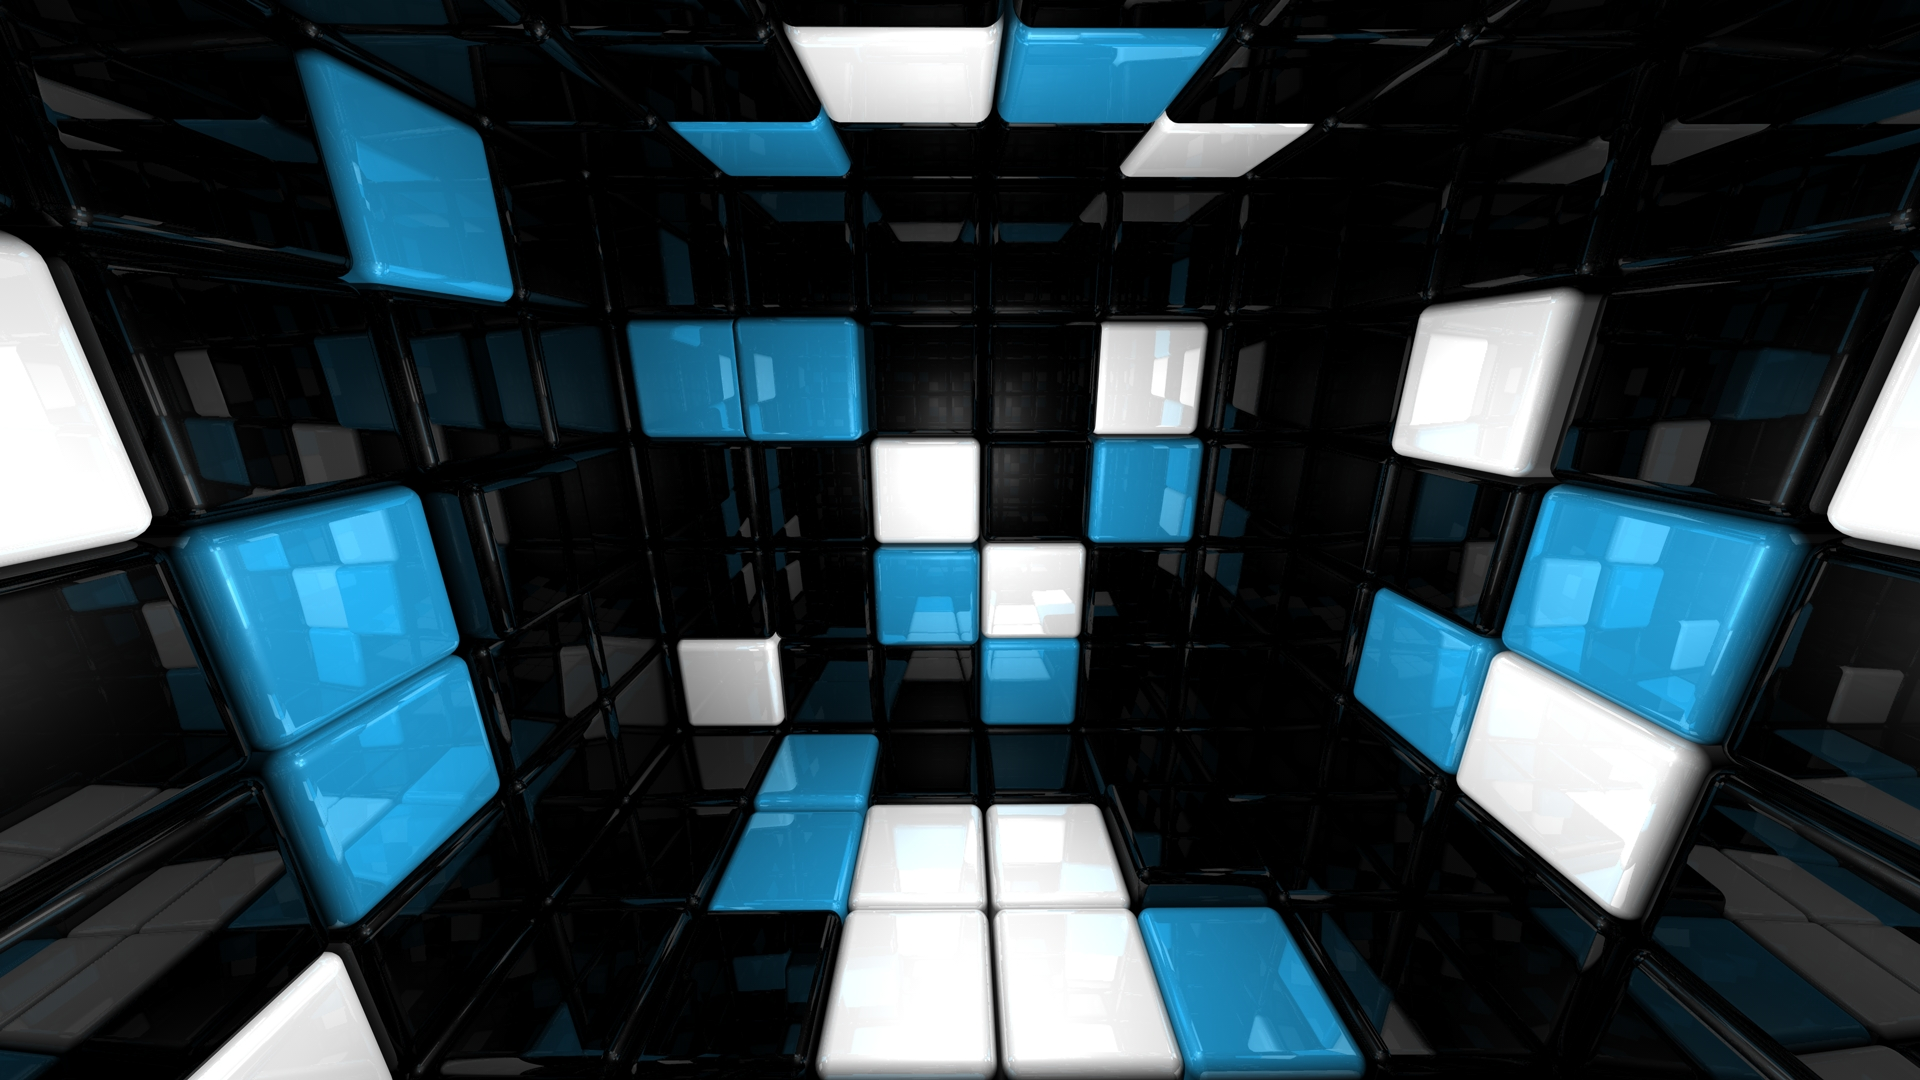 Cube room 3d hd 1920 x 1080 by h1s0ka on deviantart for Wallpaper 3d for room